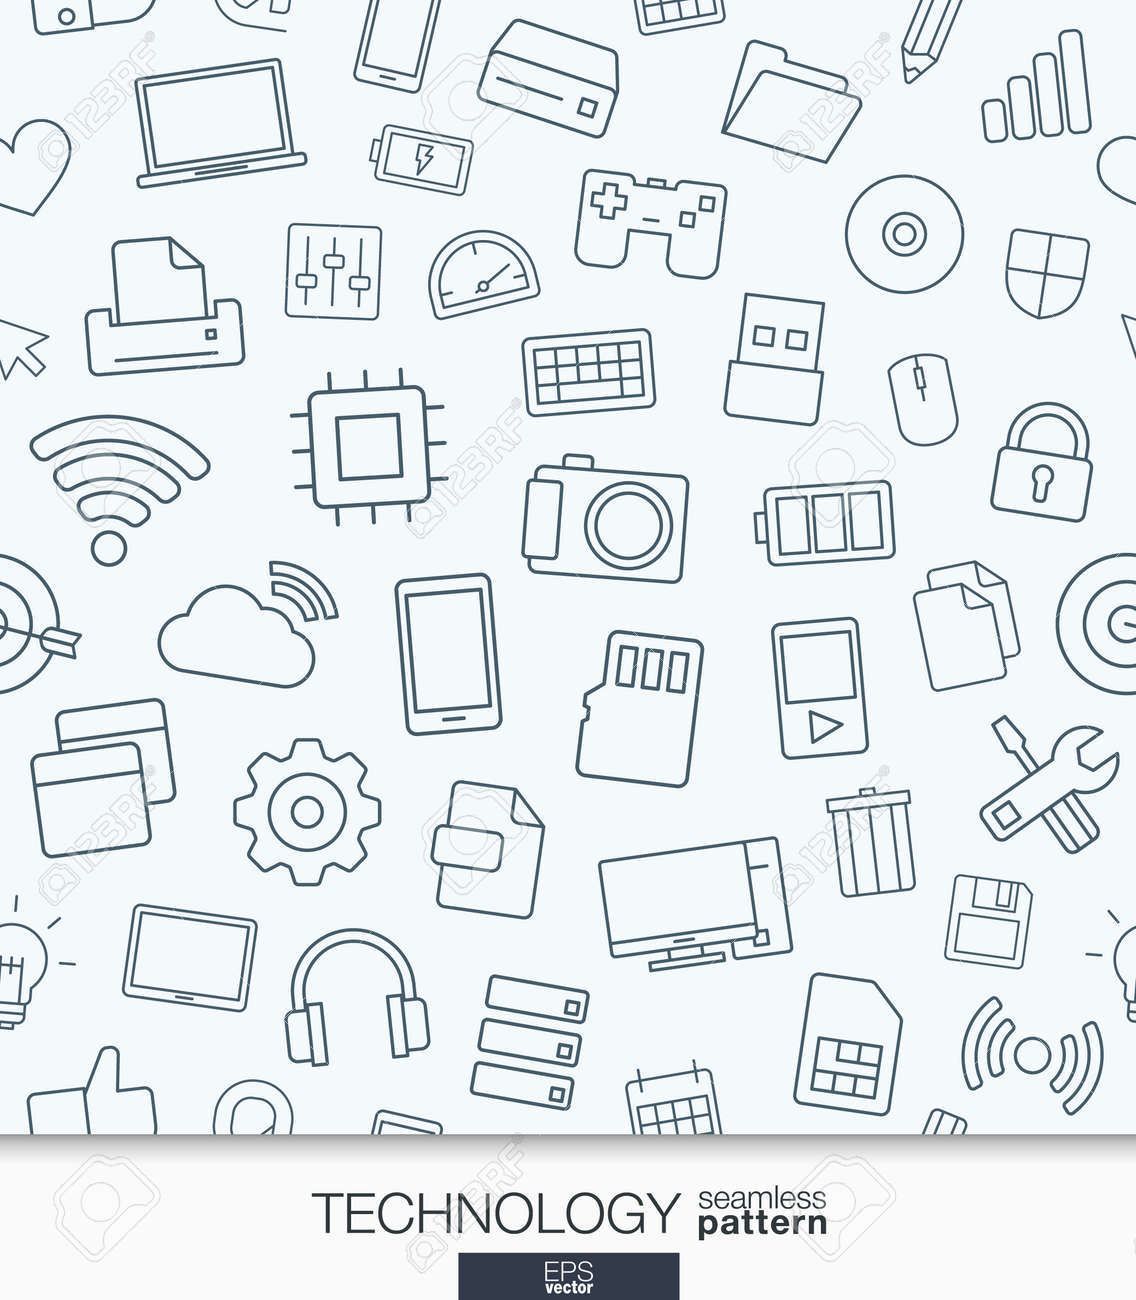 Technology Wallpaper Black And White Digital Seamless Pattern Tiling Textures With Thin Line Web